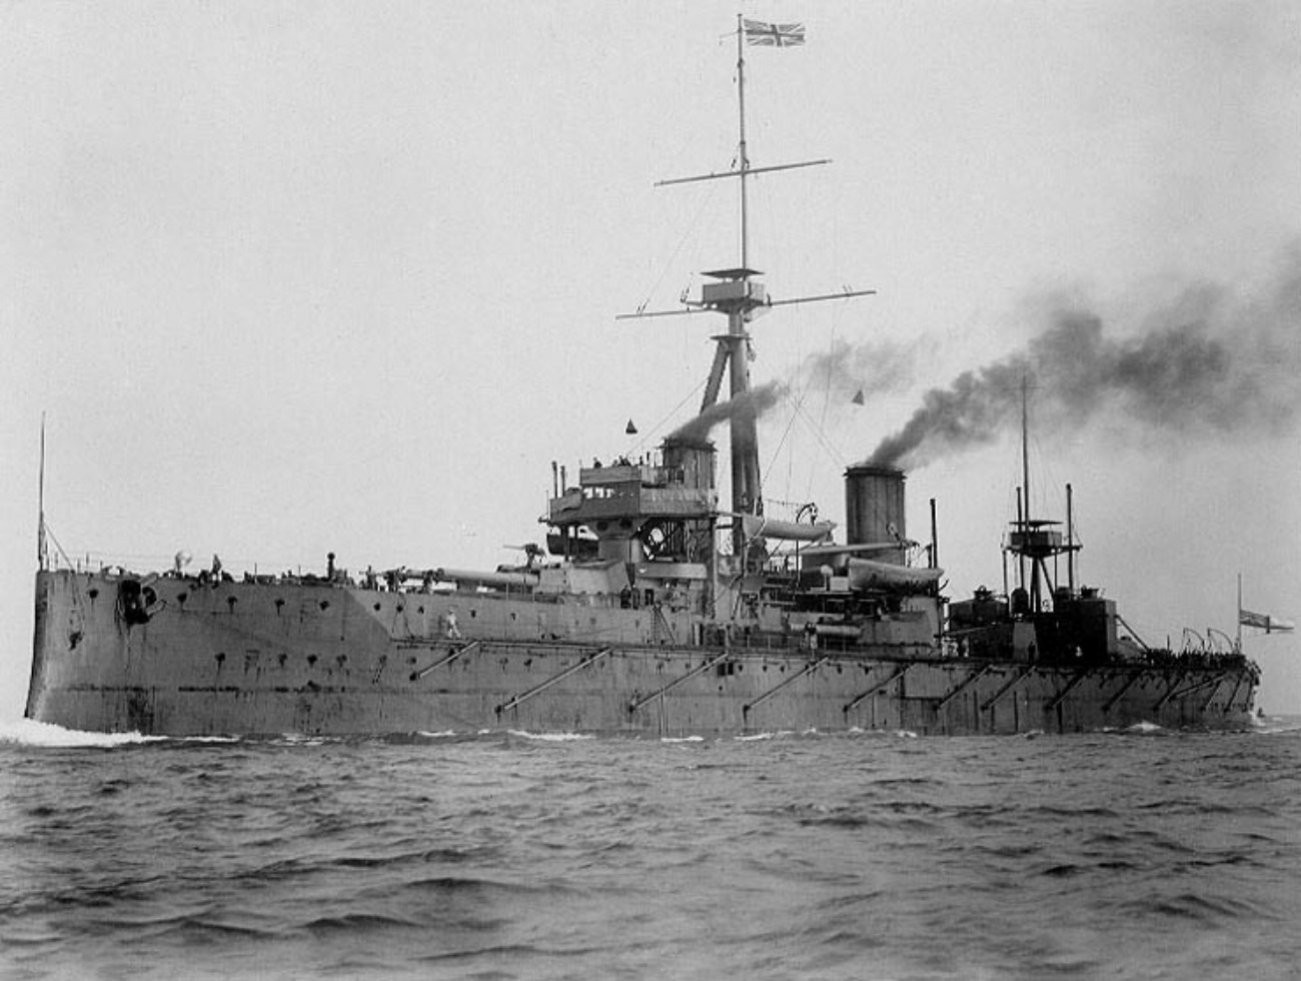 HMS Dreadnought Made All Other Battleships Obsolete